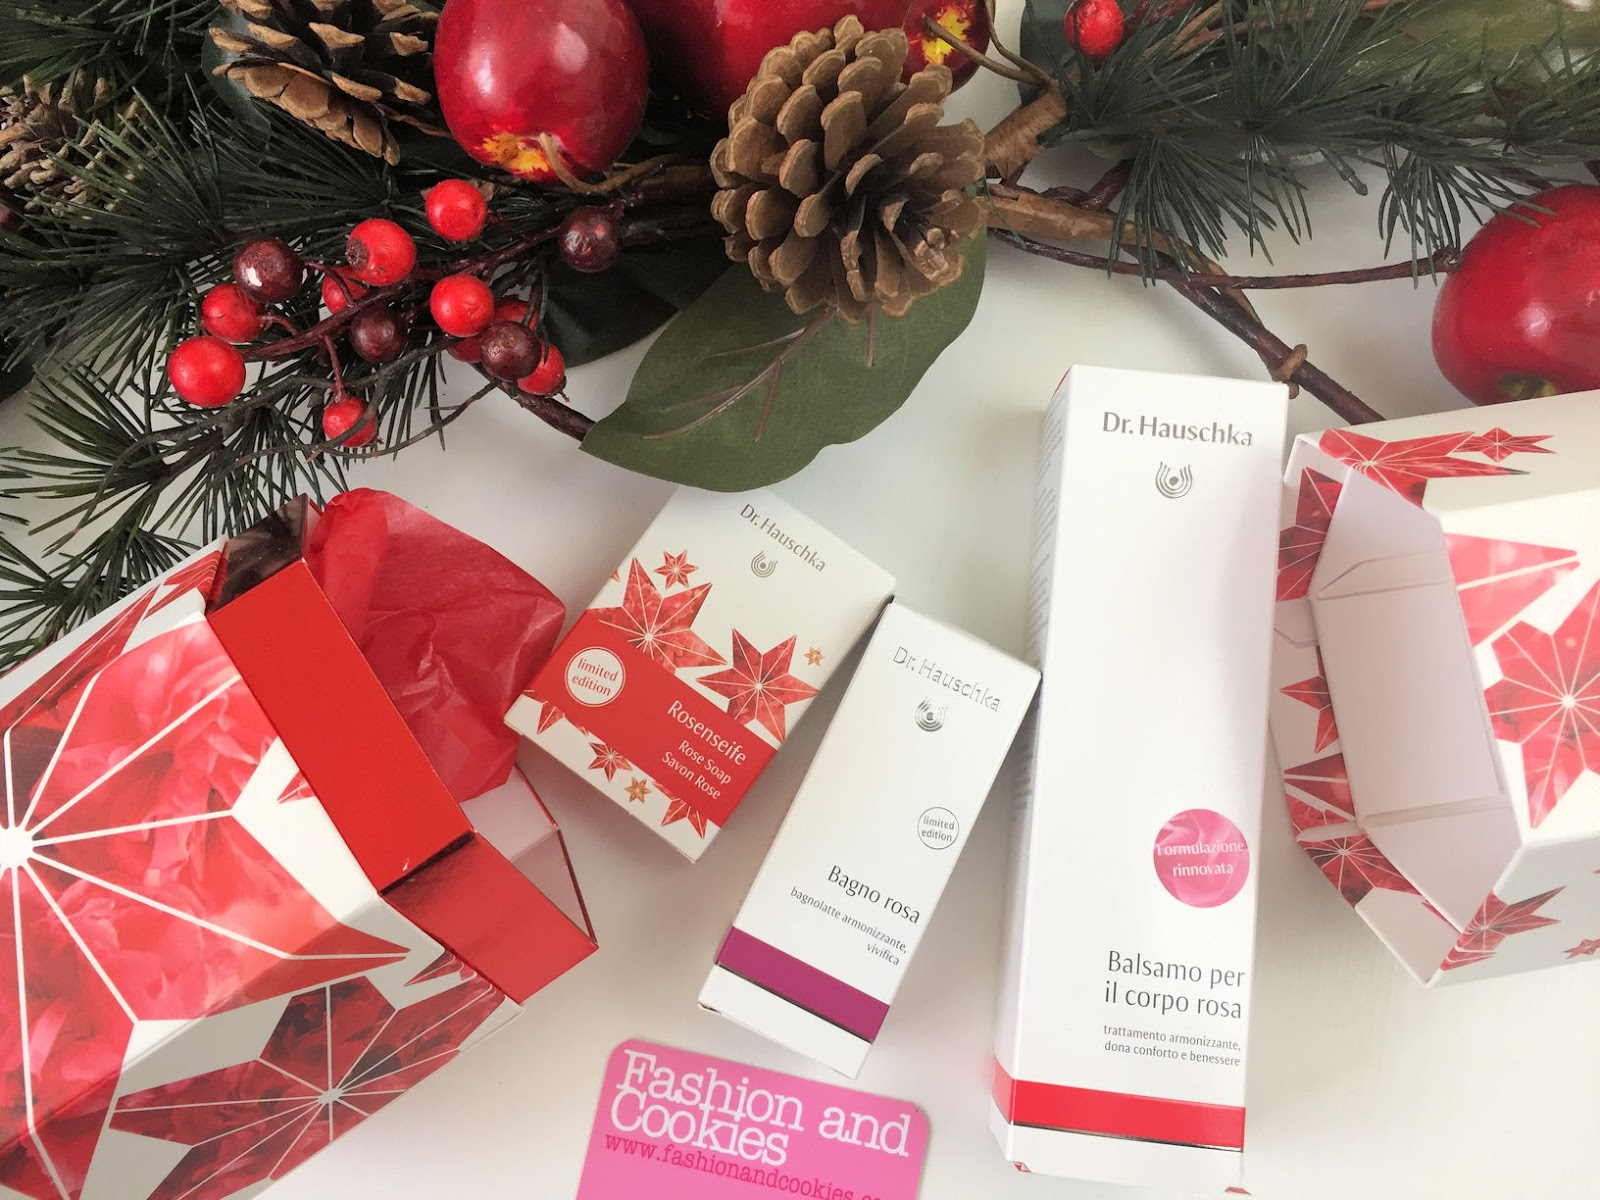 "Idee regalo Natale: cofanetto edizione limitata Dr. Hauschka ""I Segreti della rosa"" su Fashion and Cookies beauty blog, beauty blogger"